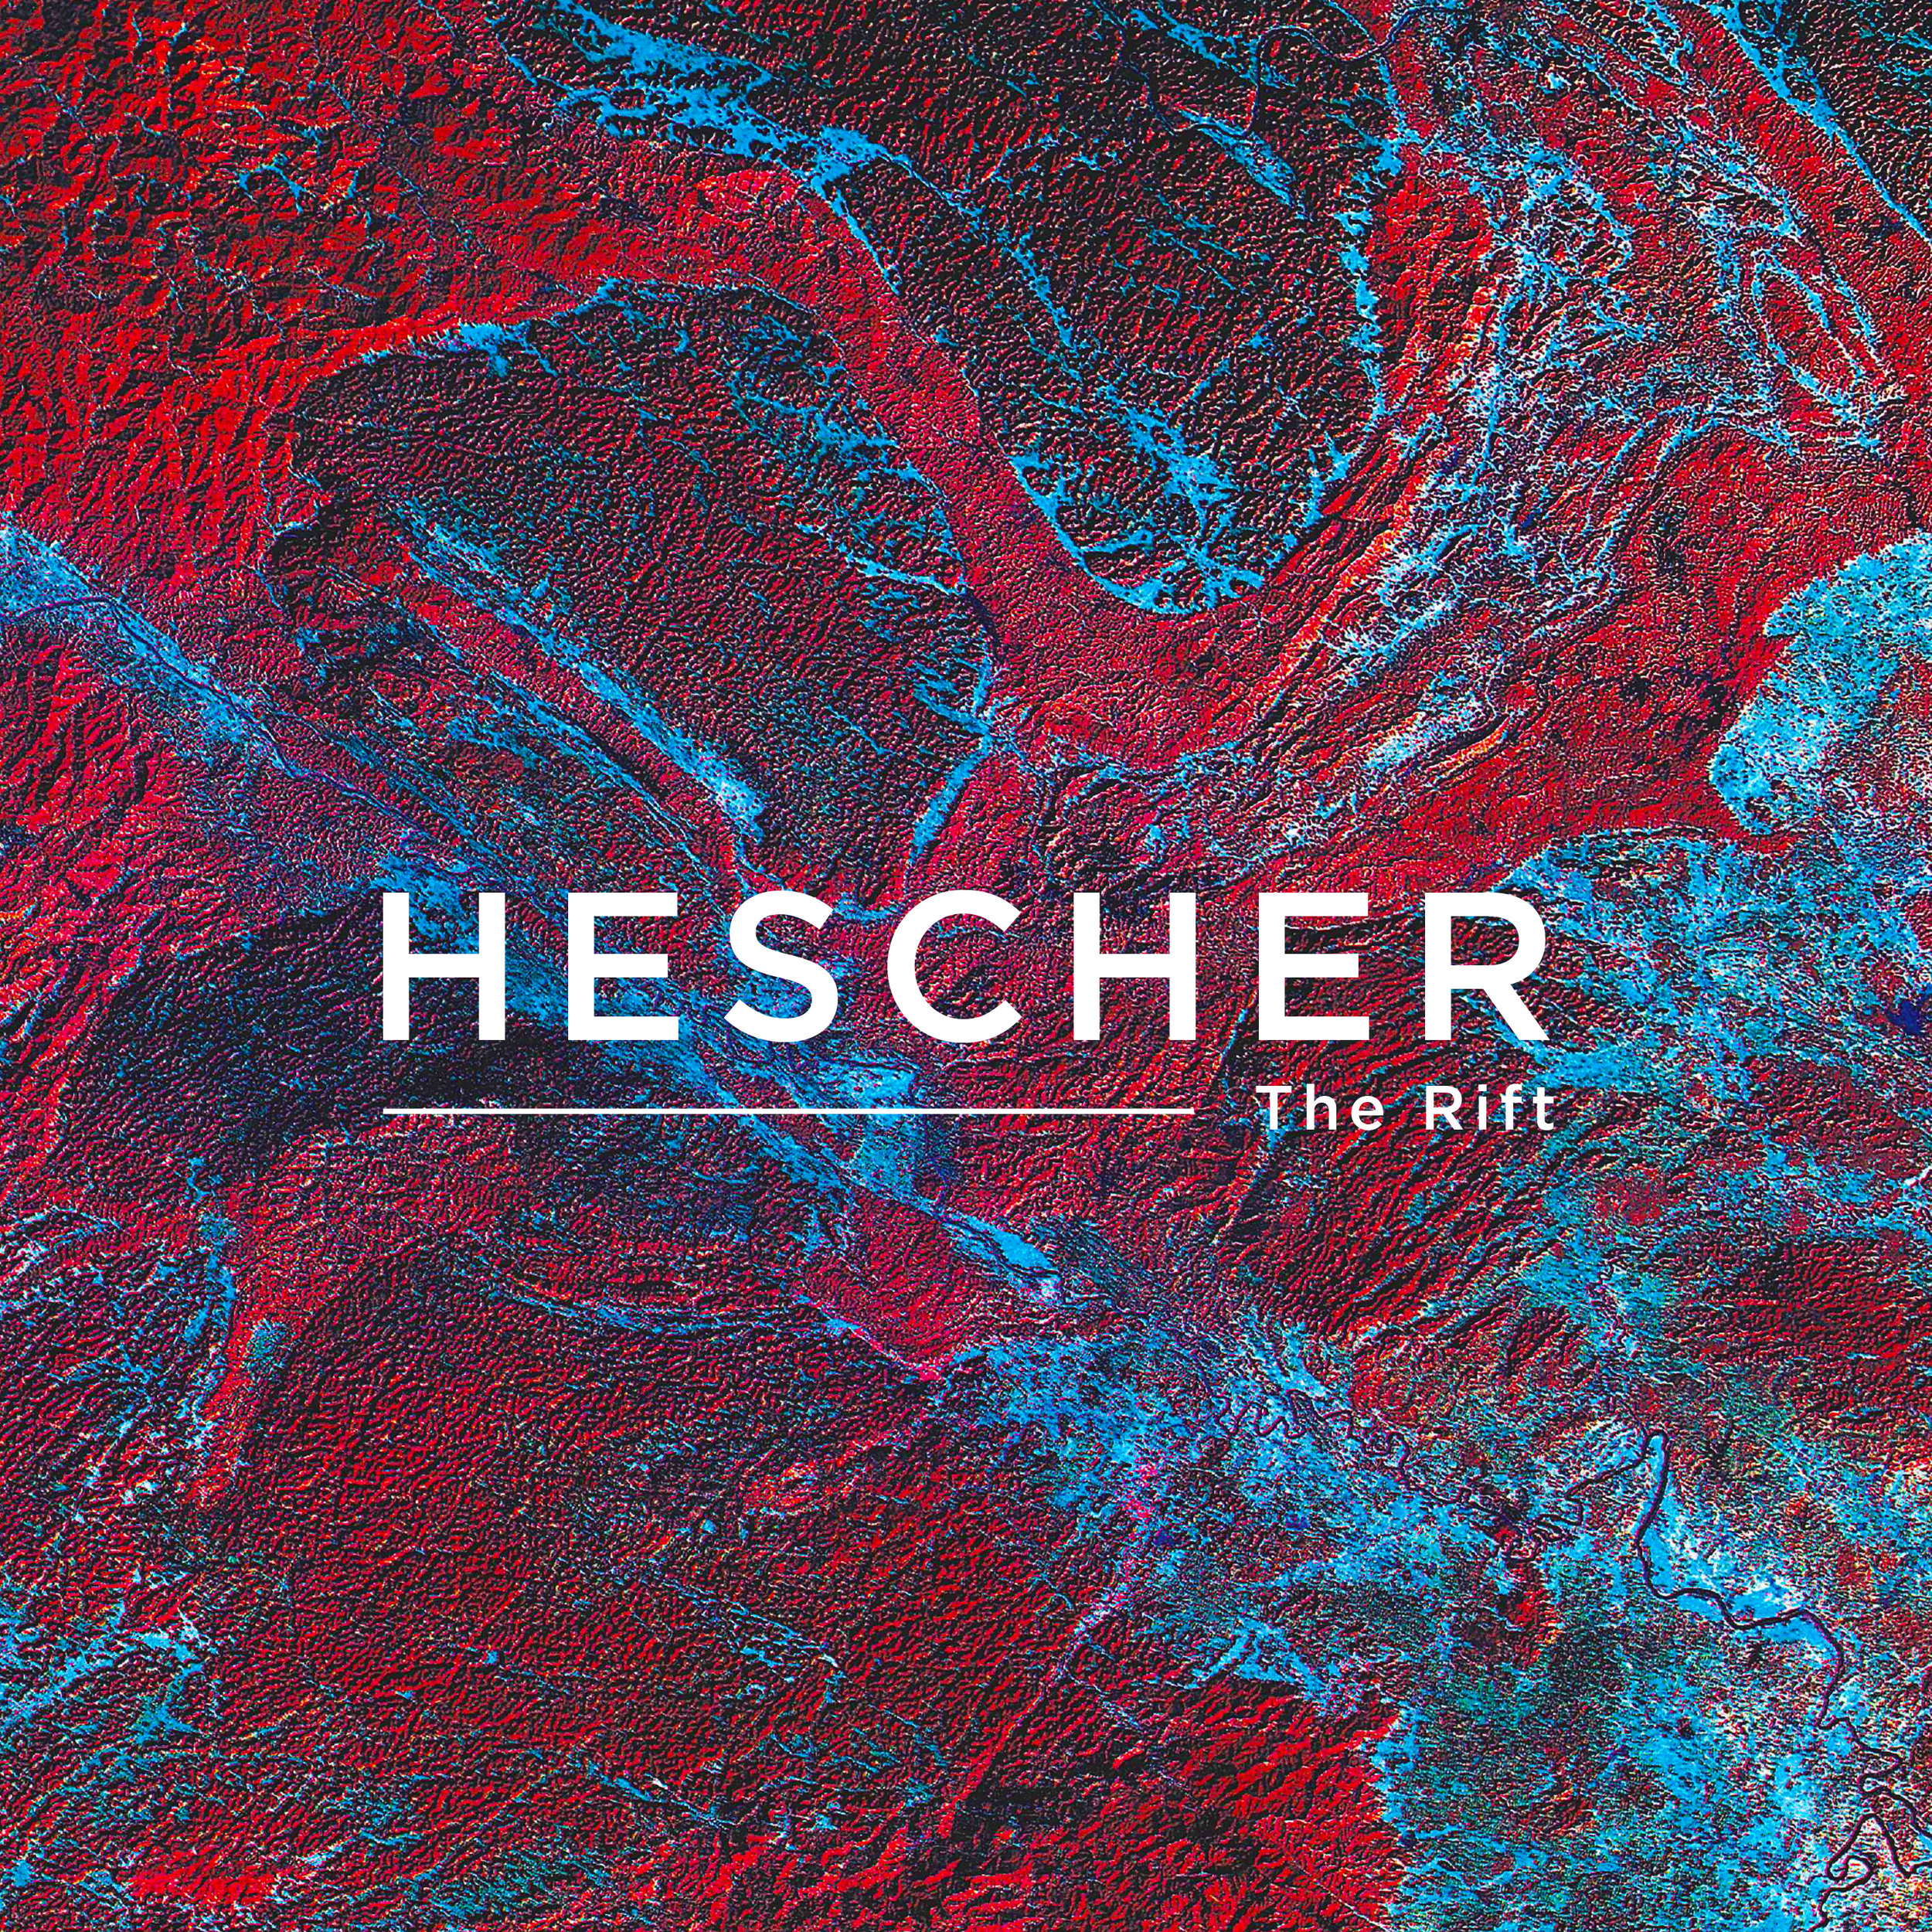 The Rift Single - Listen to Hescher's newest single The Rift HERE / Stream or download for FREE